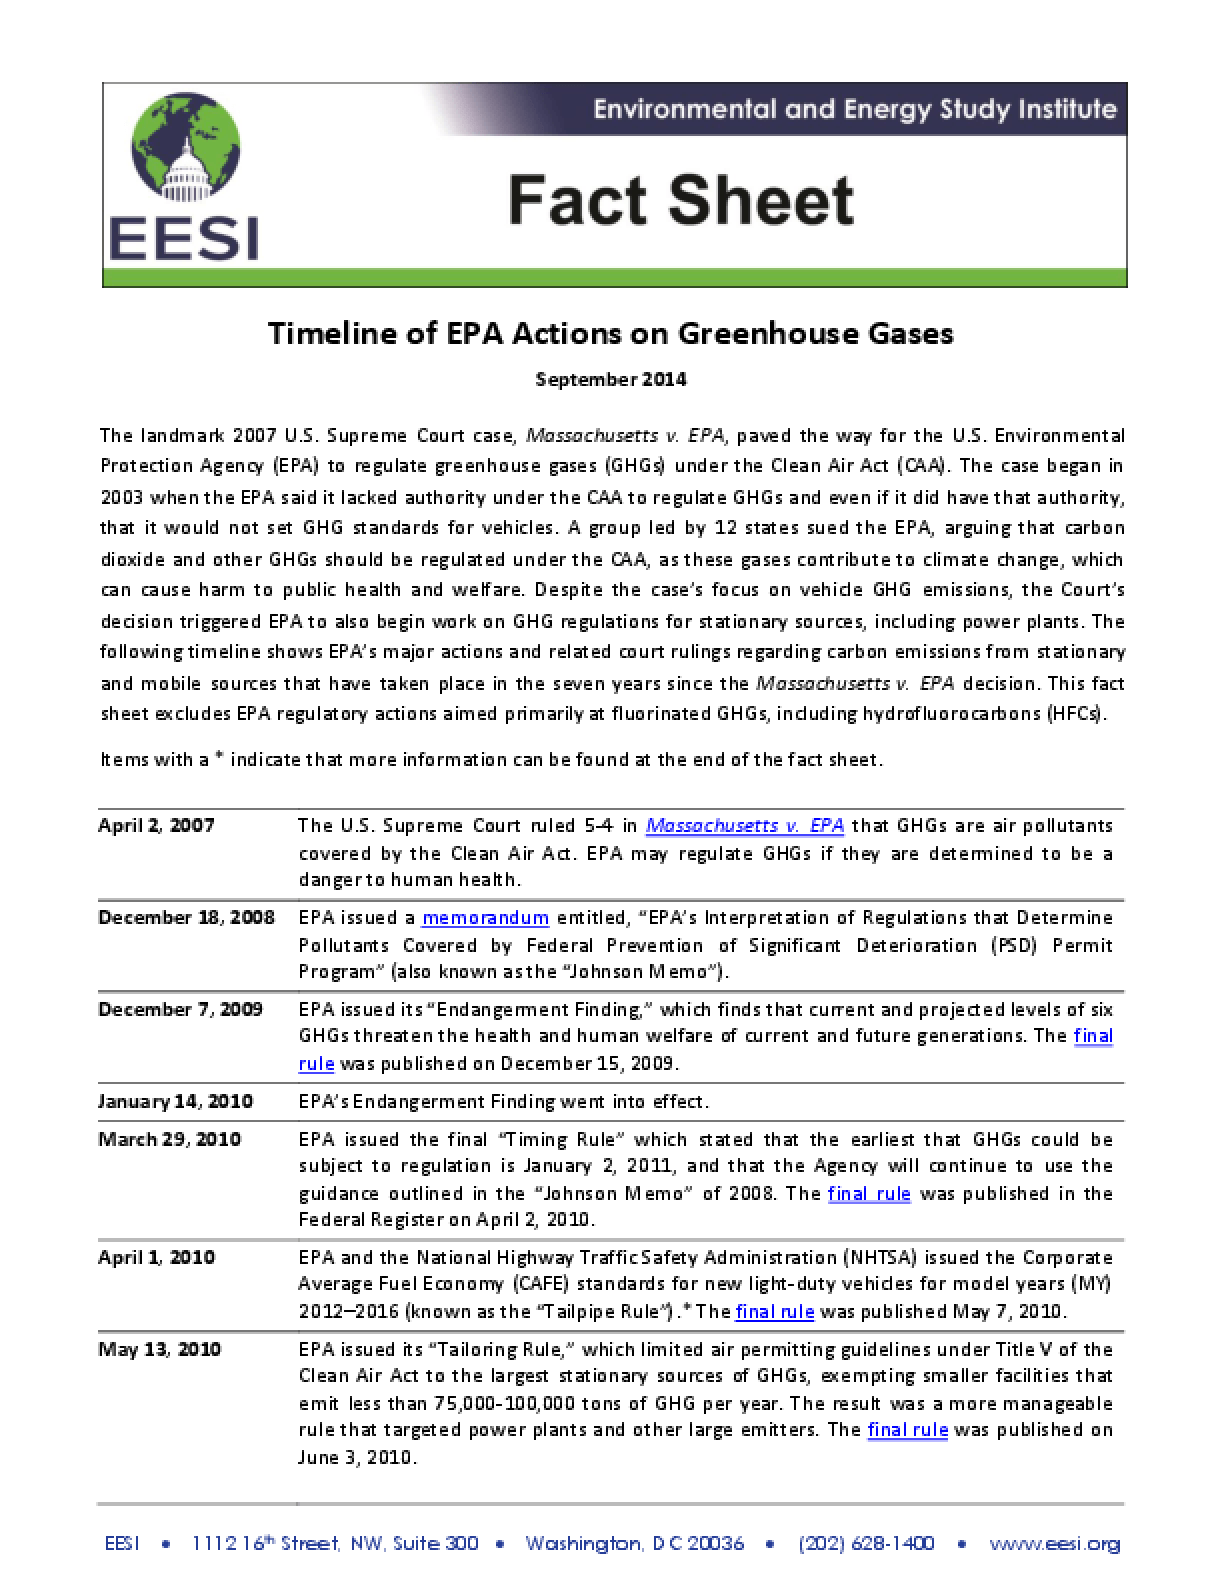 Fact Sheet: Timeline of EPA Actions on Greenhouse Gases